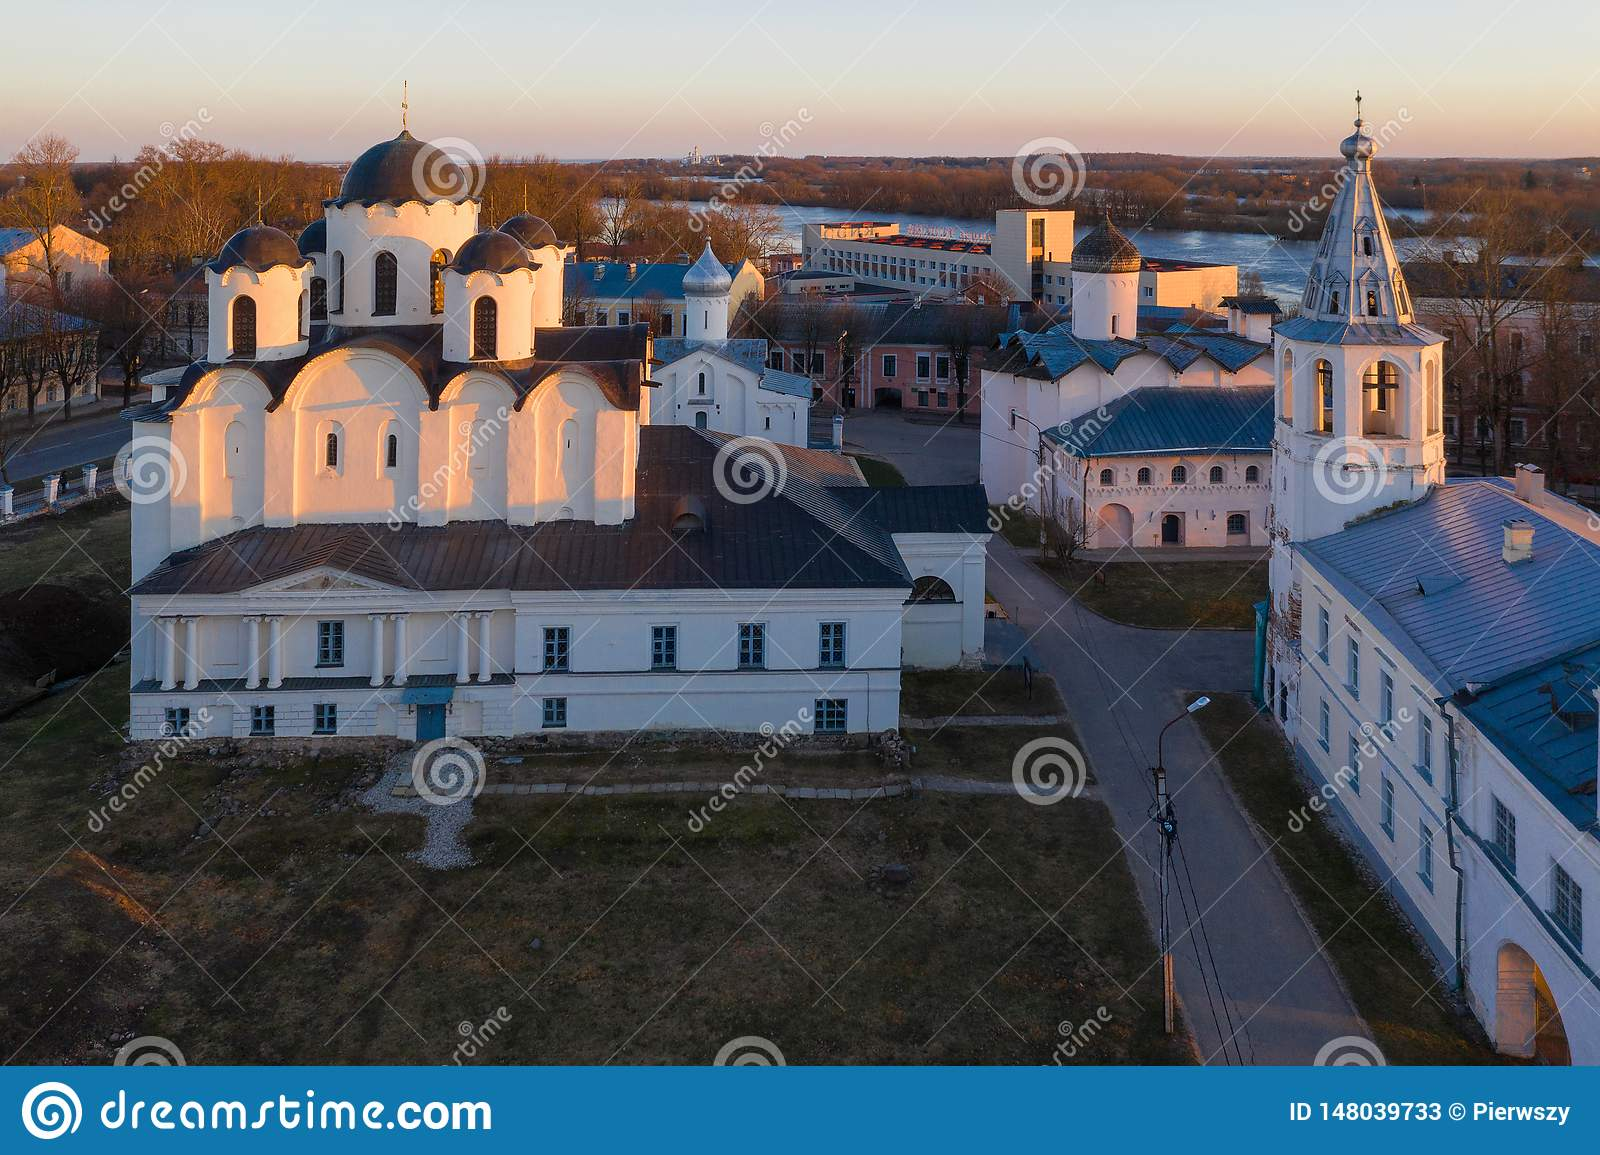 Yaroslav s Court in Veliky Novgorod. Nikolo-Dvorishchensky Cathedral, an important historical tourist site of Russia, aerial view